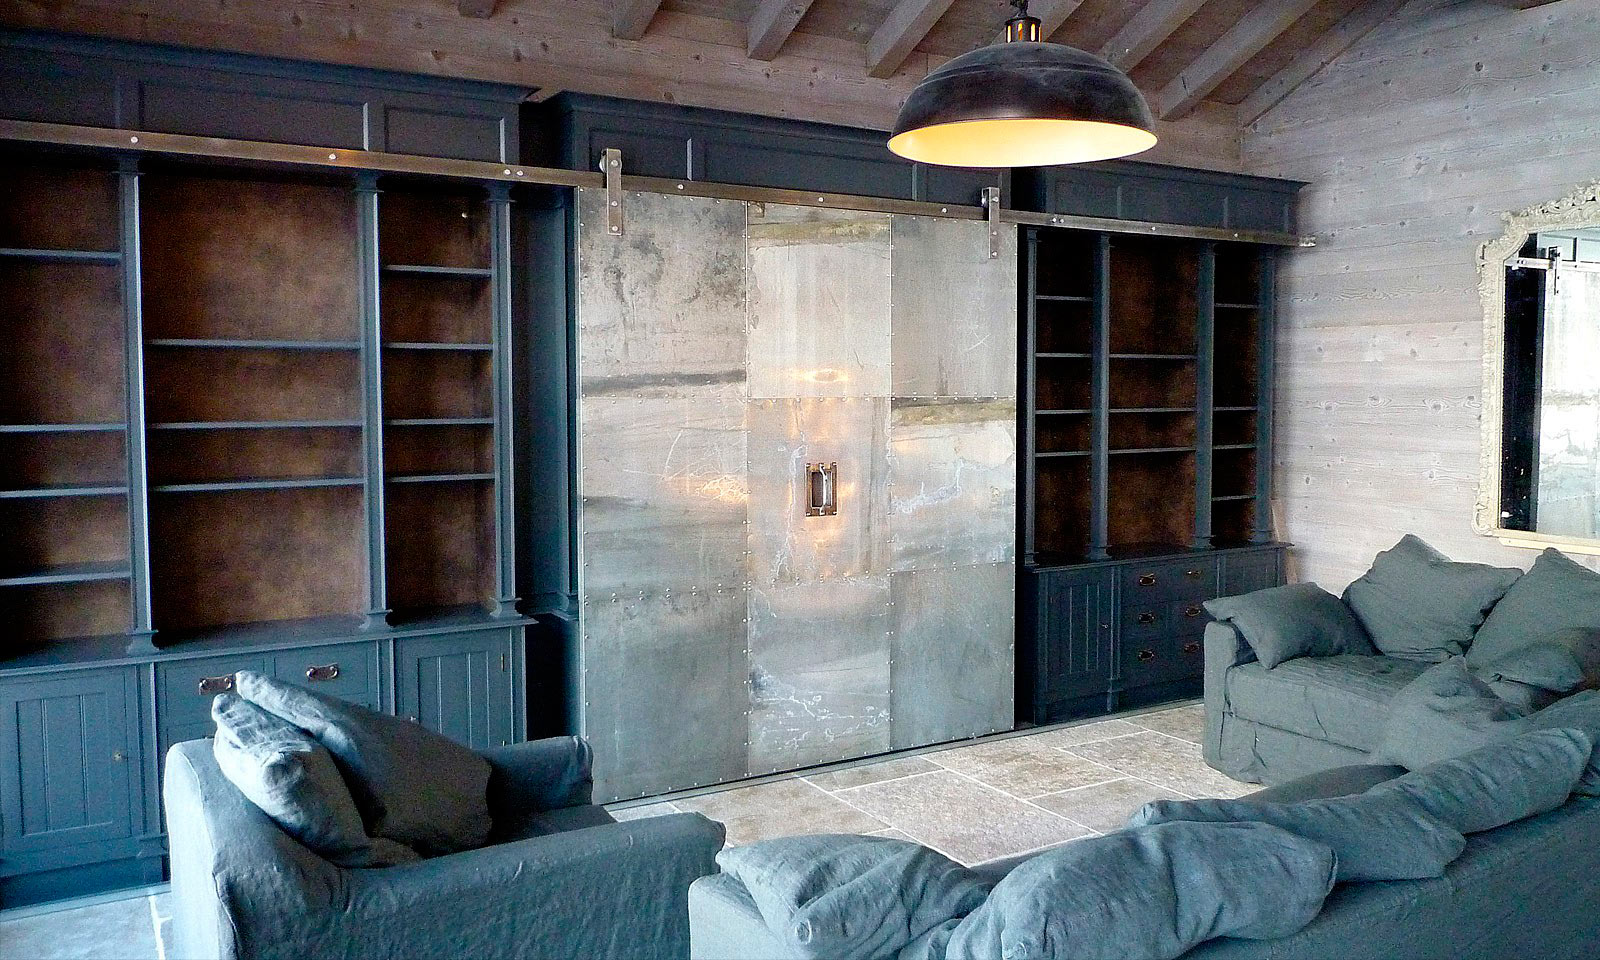 St Foy Media Unit. A bespoke and truly unique, full height media centre with an industrial twist. Manufactured for a ski chalet in St Foy, the unit features a riveted zinc sliding door and was hand-painted and installed by the skilled cabinet makers at Mounts Hill Woodcraft.